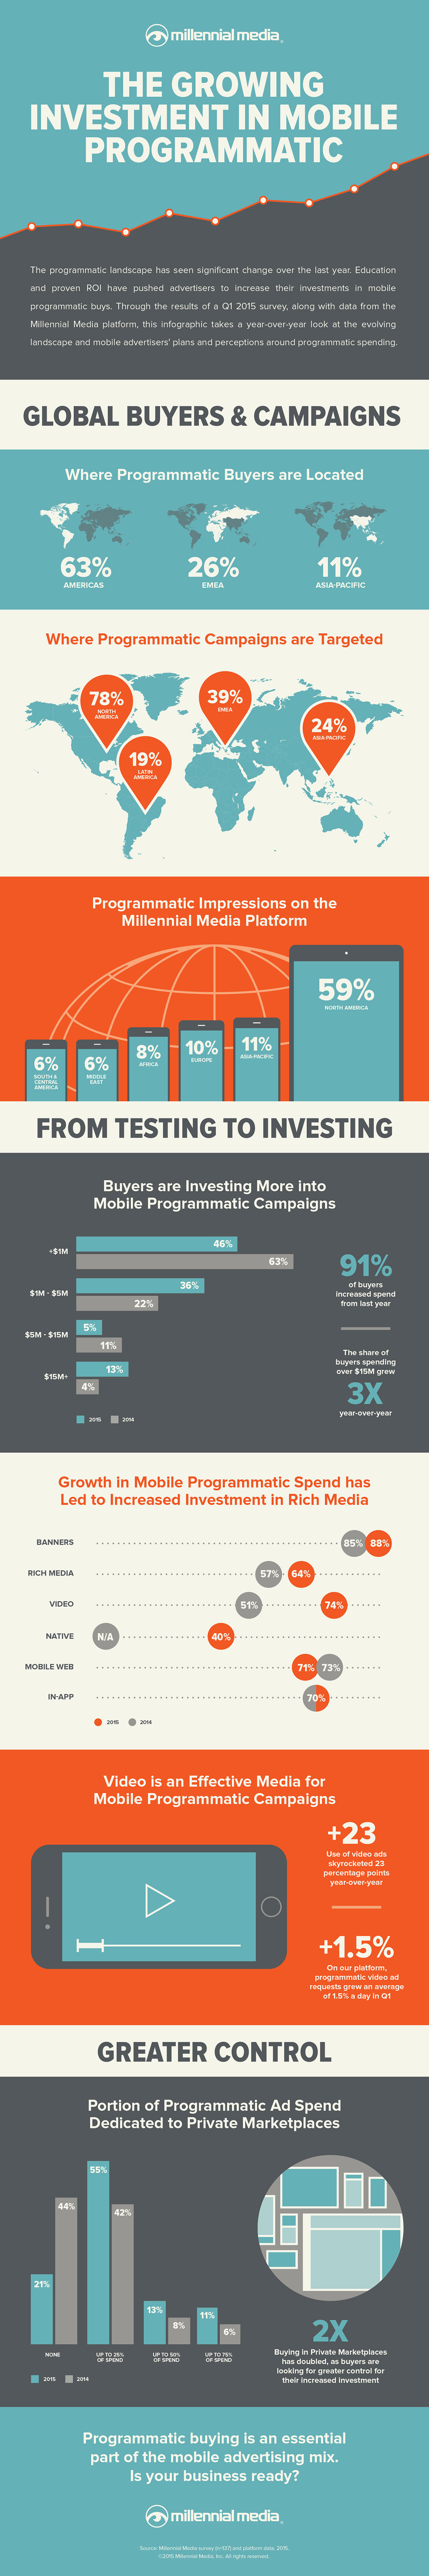 Millennial-Media-The-Growing-Investment-Mobile-Programmatic-Infographic-1160